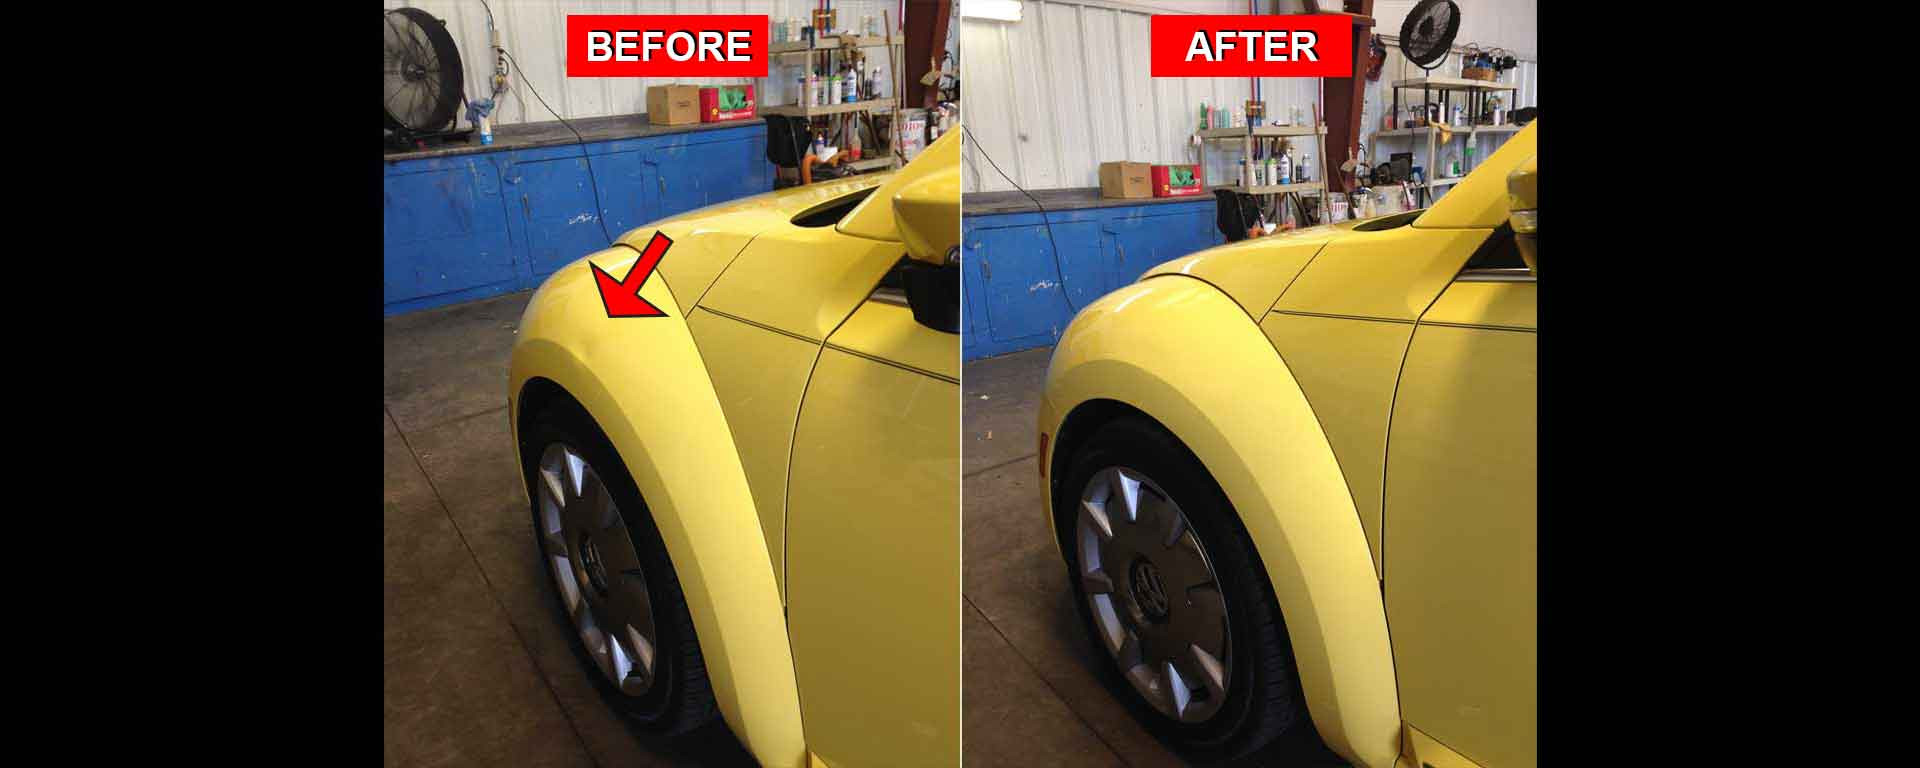 Remove Dent From Car Door Price Comparison For Magnetic Guards Cospstore Paintless